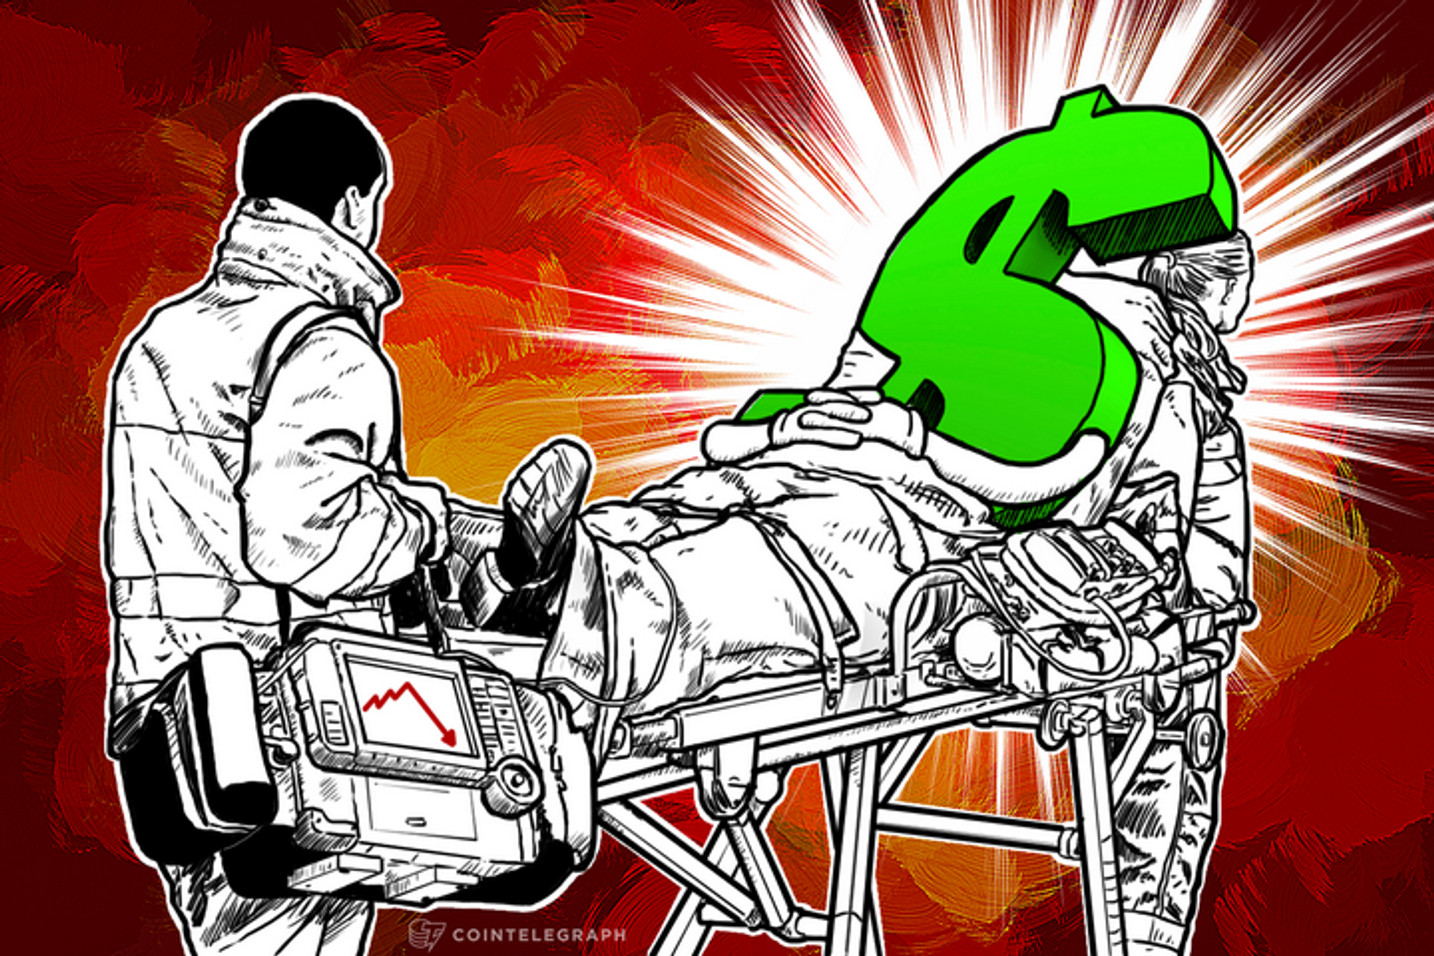 USD Drops 12% Against Bitcoin: Is the Dollar Dying? (Op-Ed)